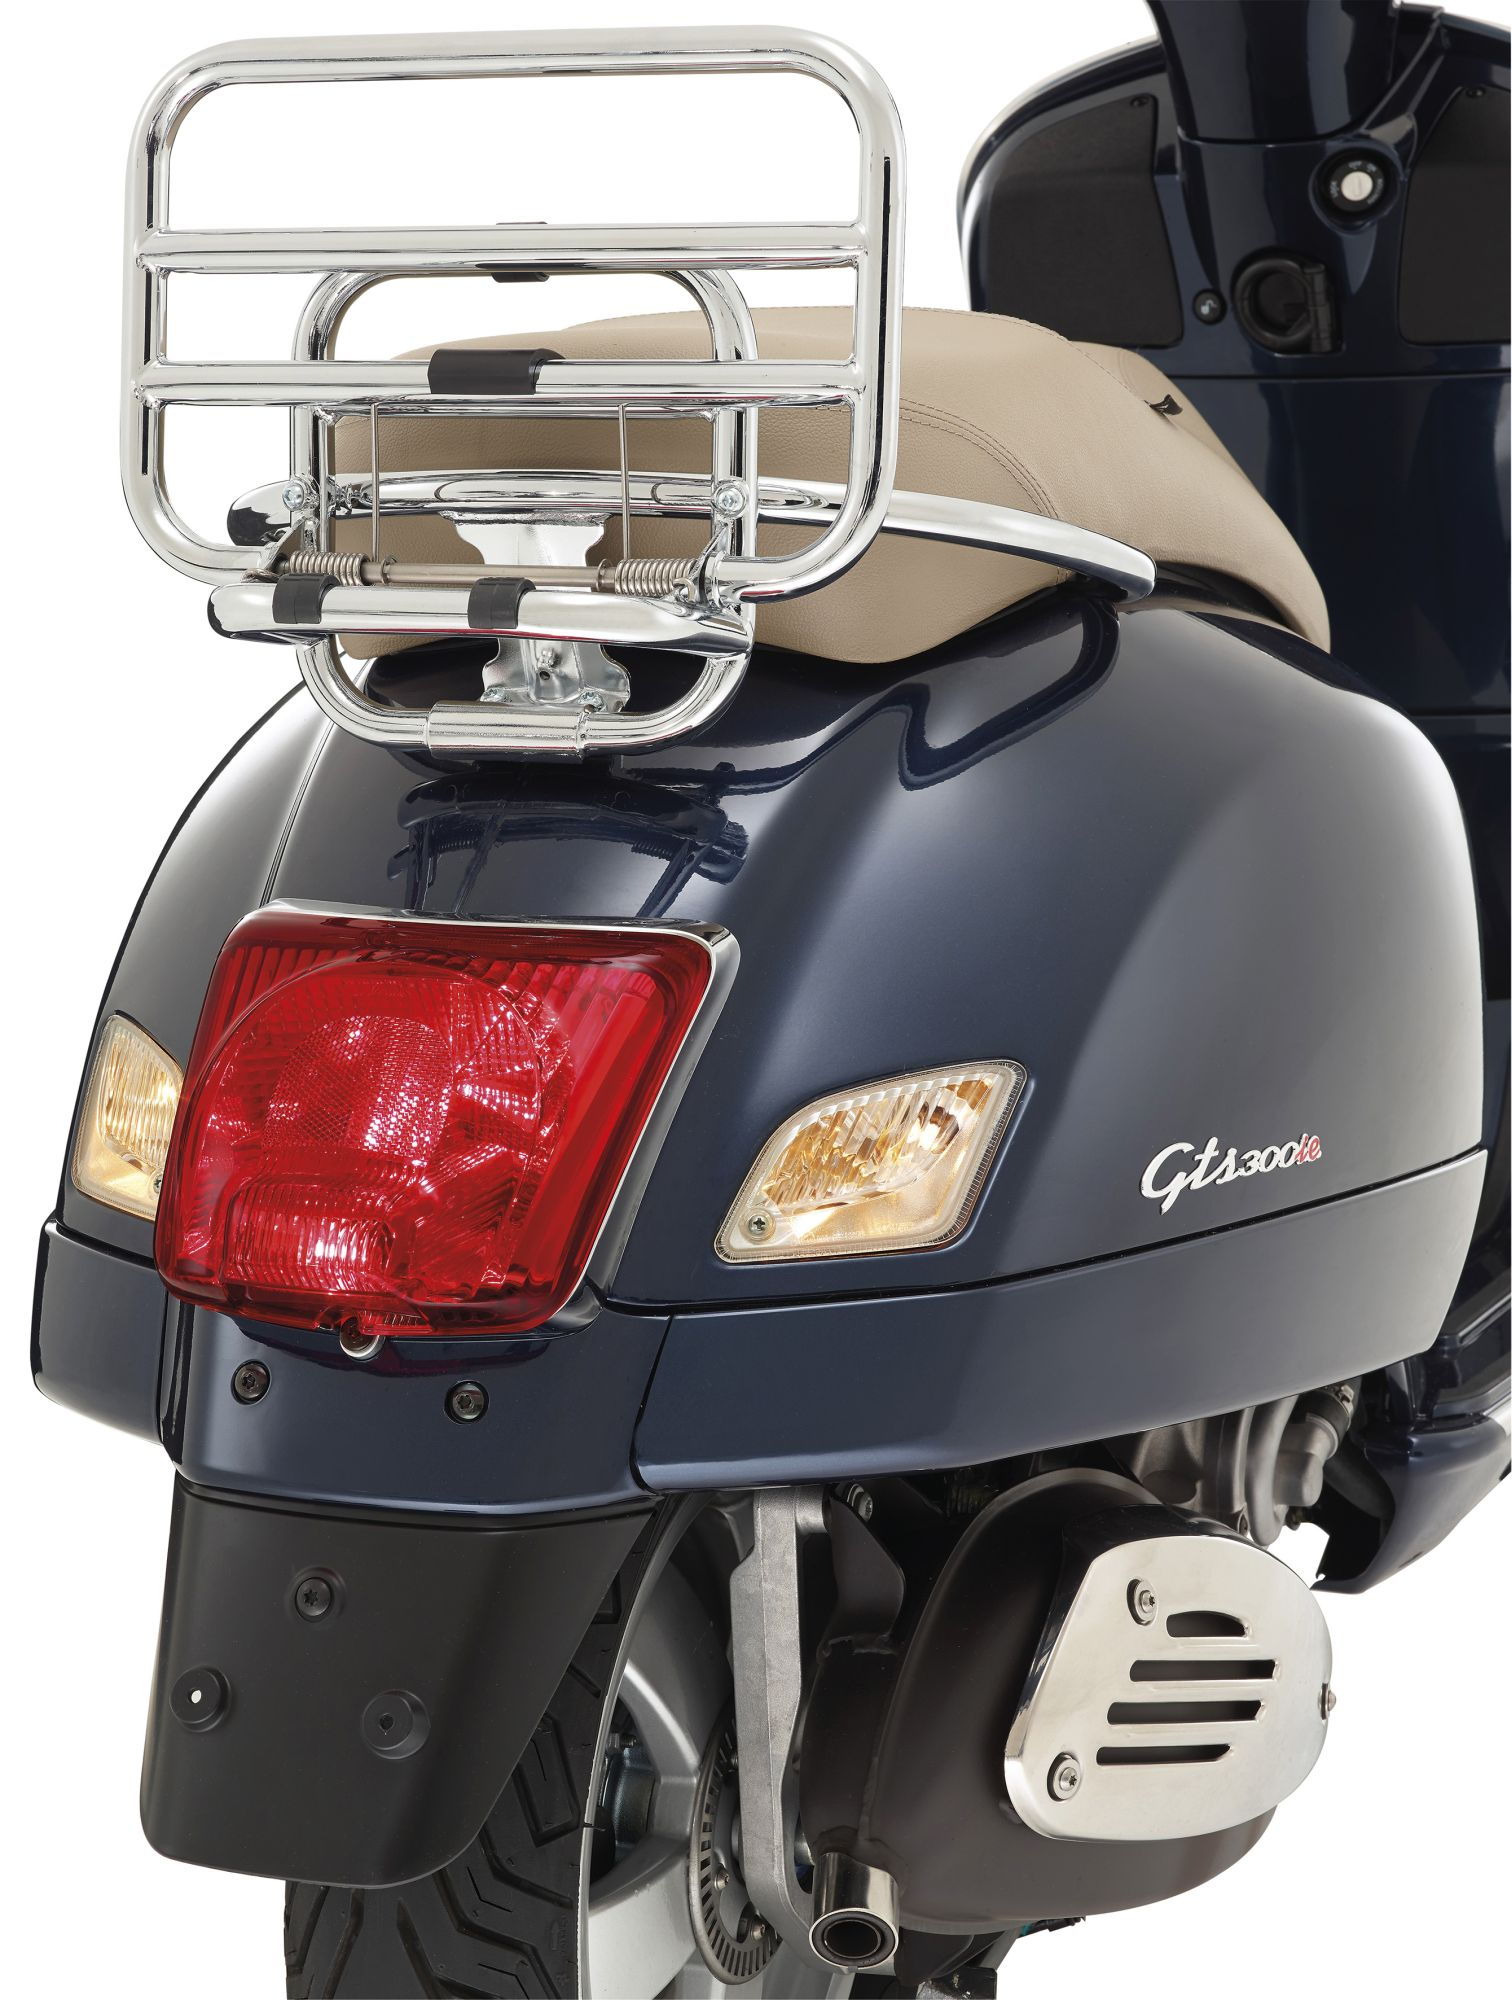 motorrad occasion vespa gts 300 i e kaufen. Black Bedroom Furniture Sets. Home Design Ideas